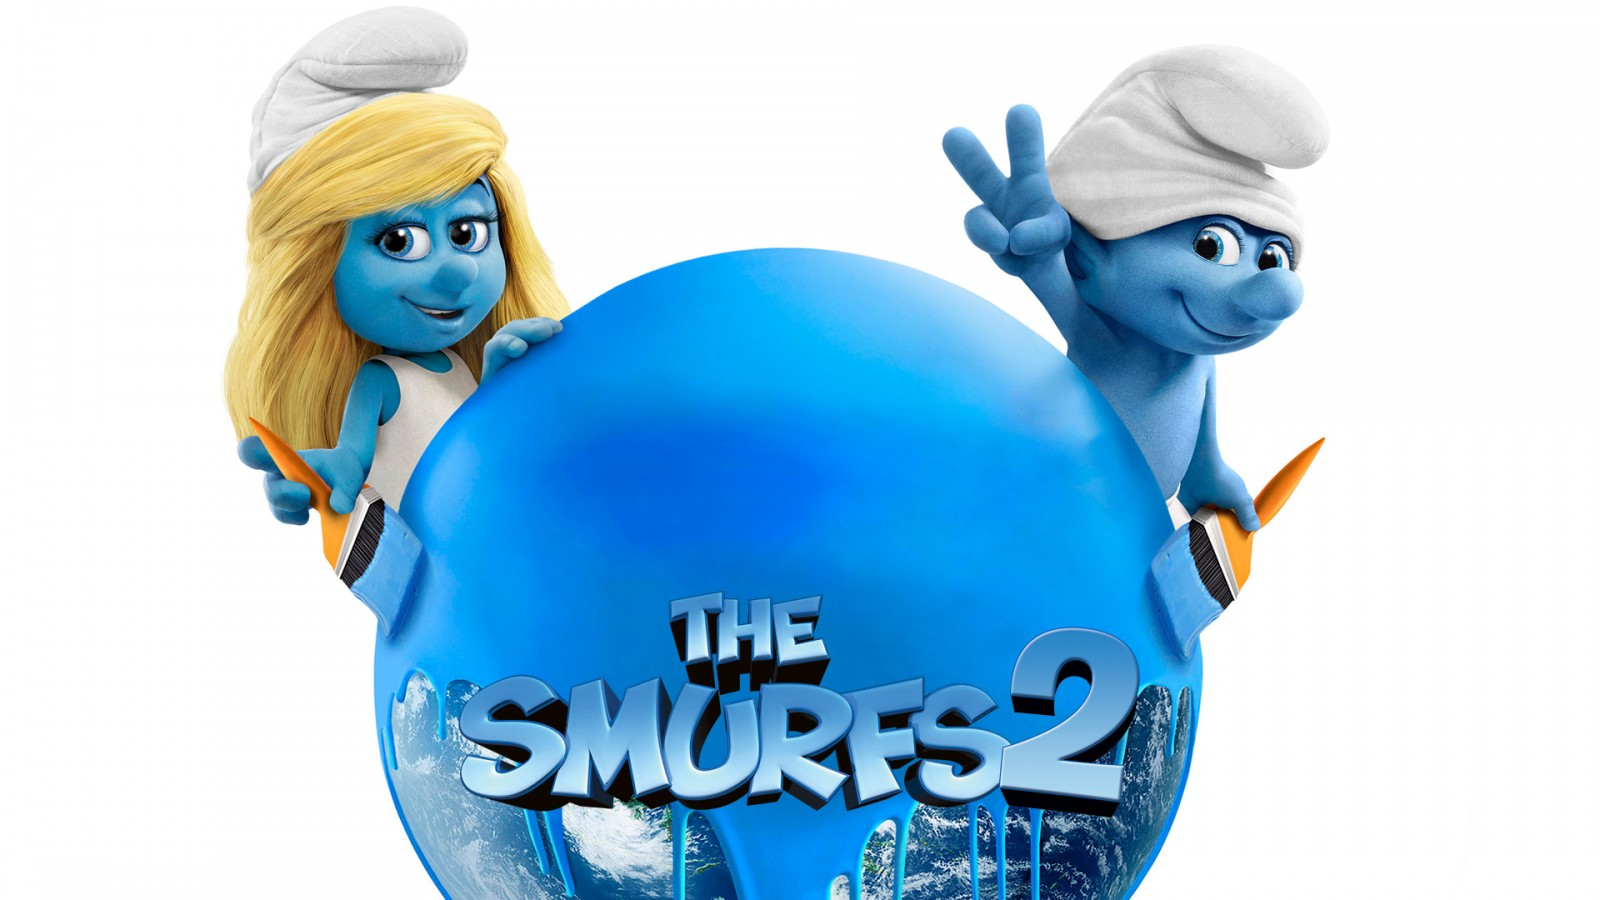 Smurf Wallpaper 3d The Smurfs 2 Wallpapers Hd Wallpapers Id 12541